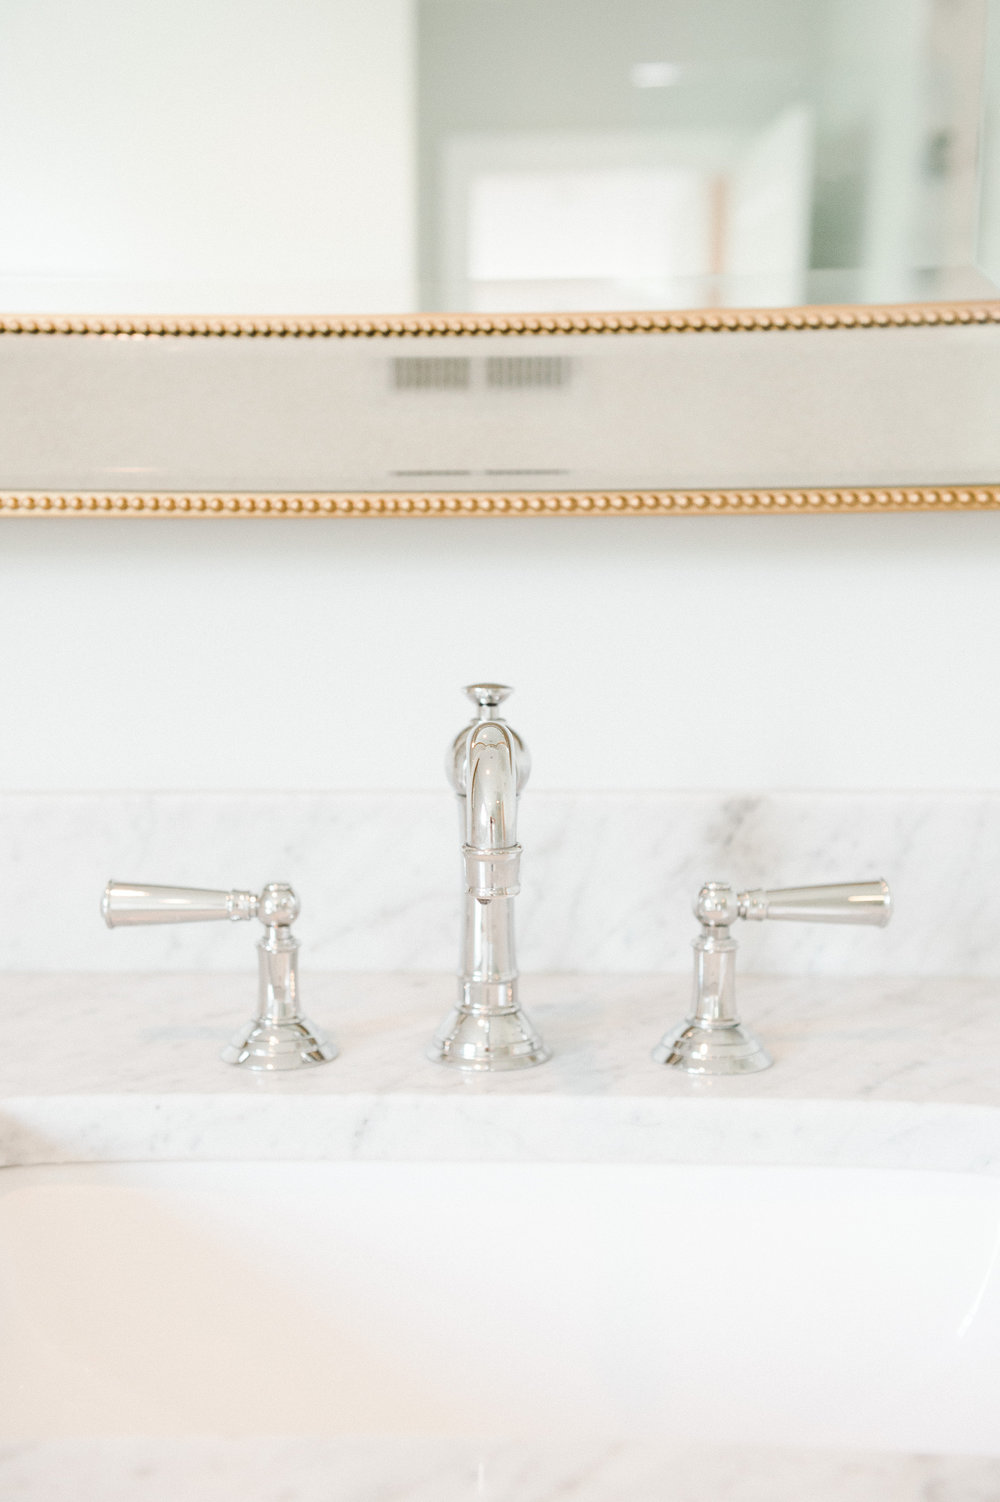 Gold+mirror,+marble+counters,+classic+faucet+||+Studio+McGee.jpg